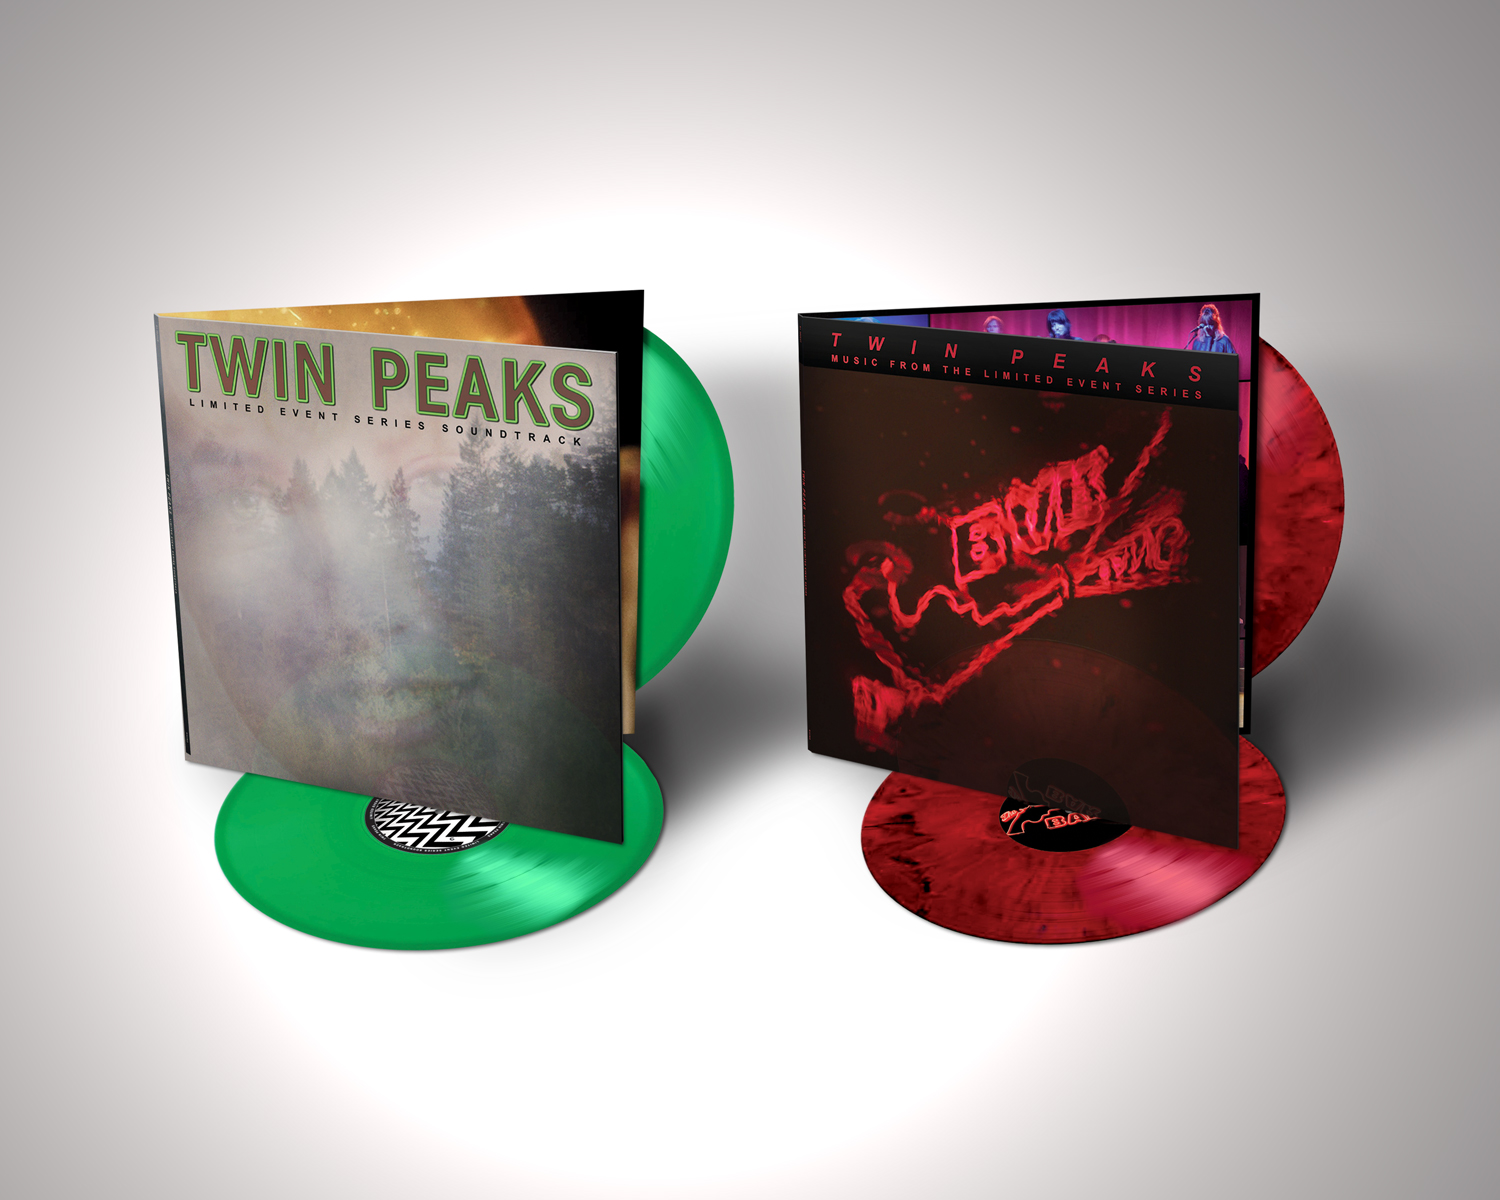 Twin Peaks Music From The Limited Event Series Rhino Media